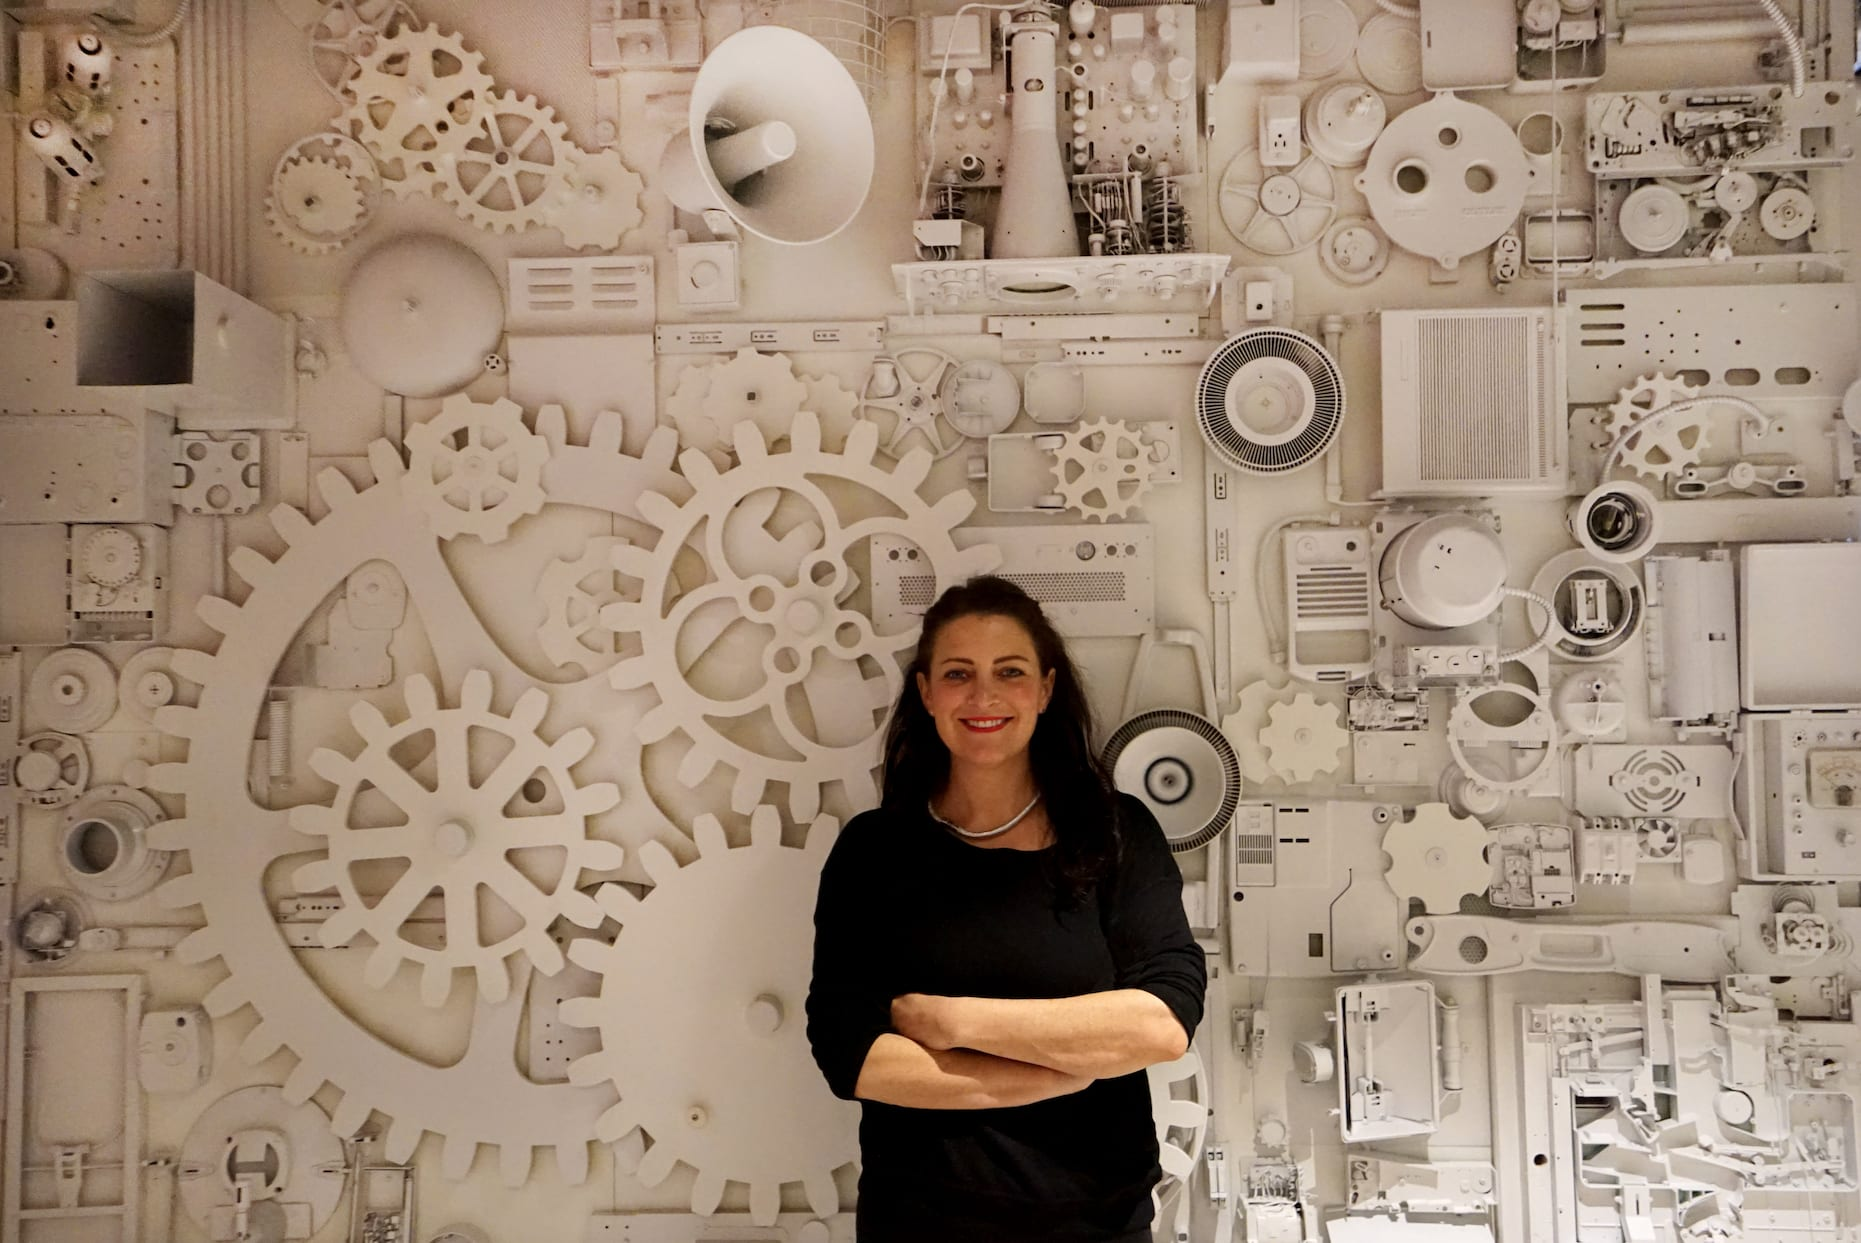 Monochromatic Industrial Wall Treatment with Gears and Electronics